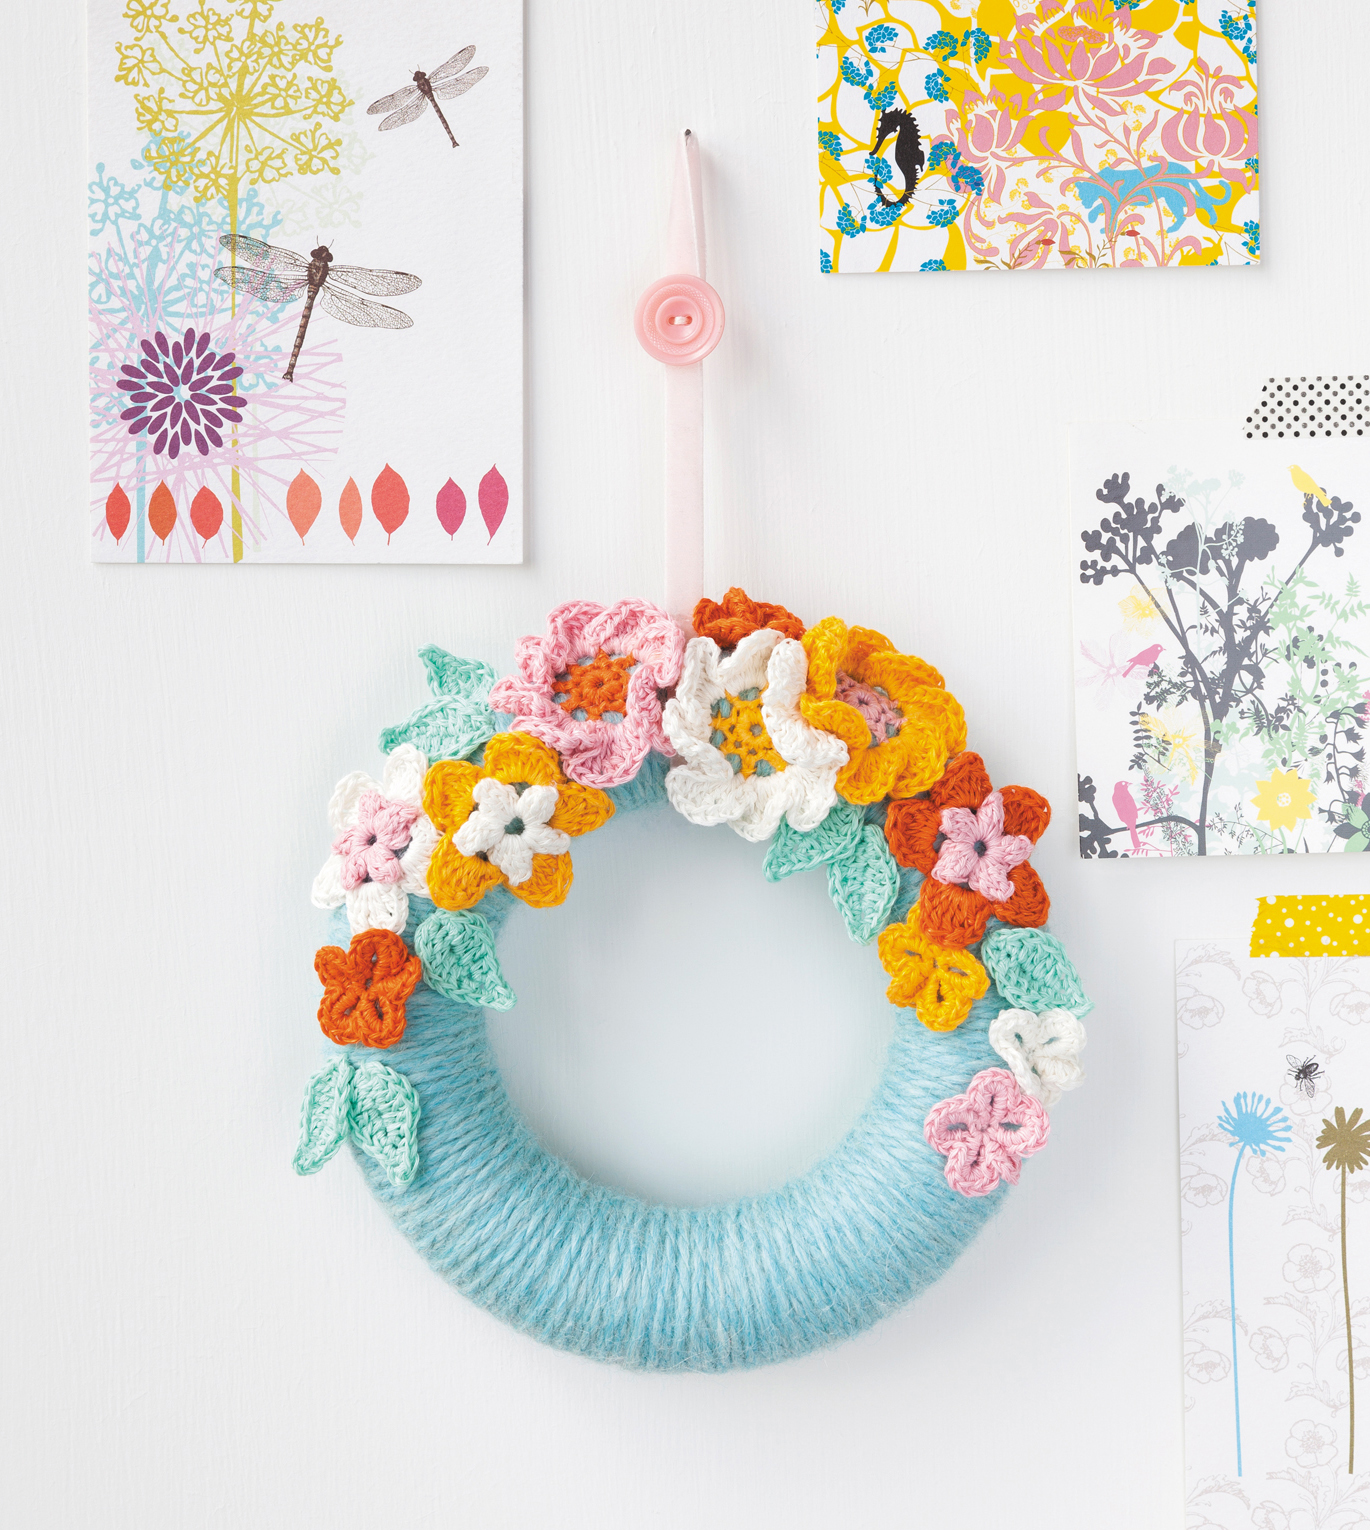 Blossom Wreath from Crochet Home by Emma Lamb | Crochet designs and styling by Emma Lamb / Photography by Jason M Jenkins